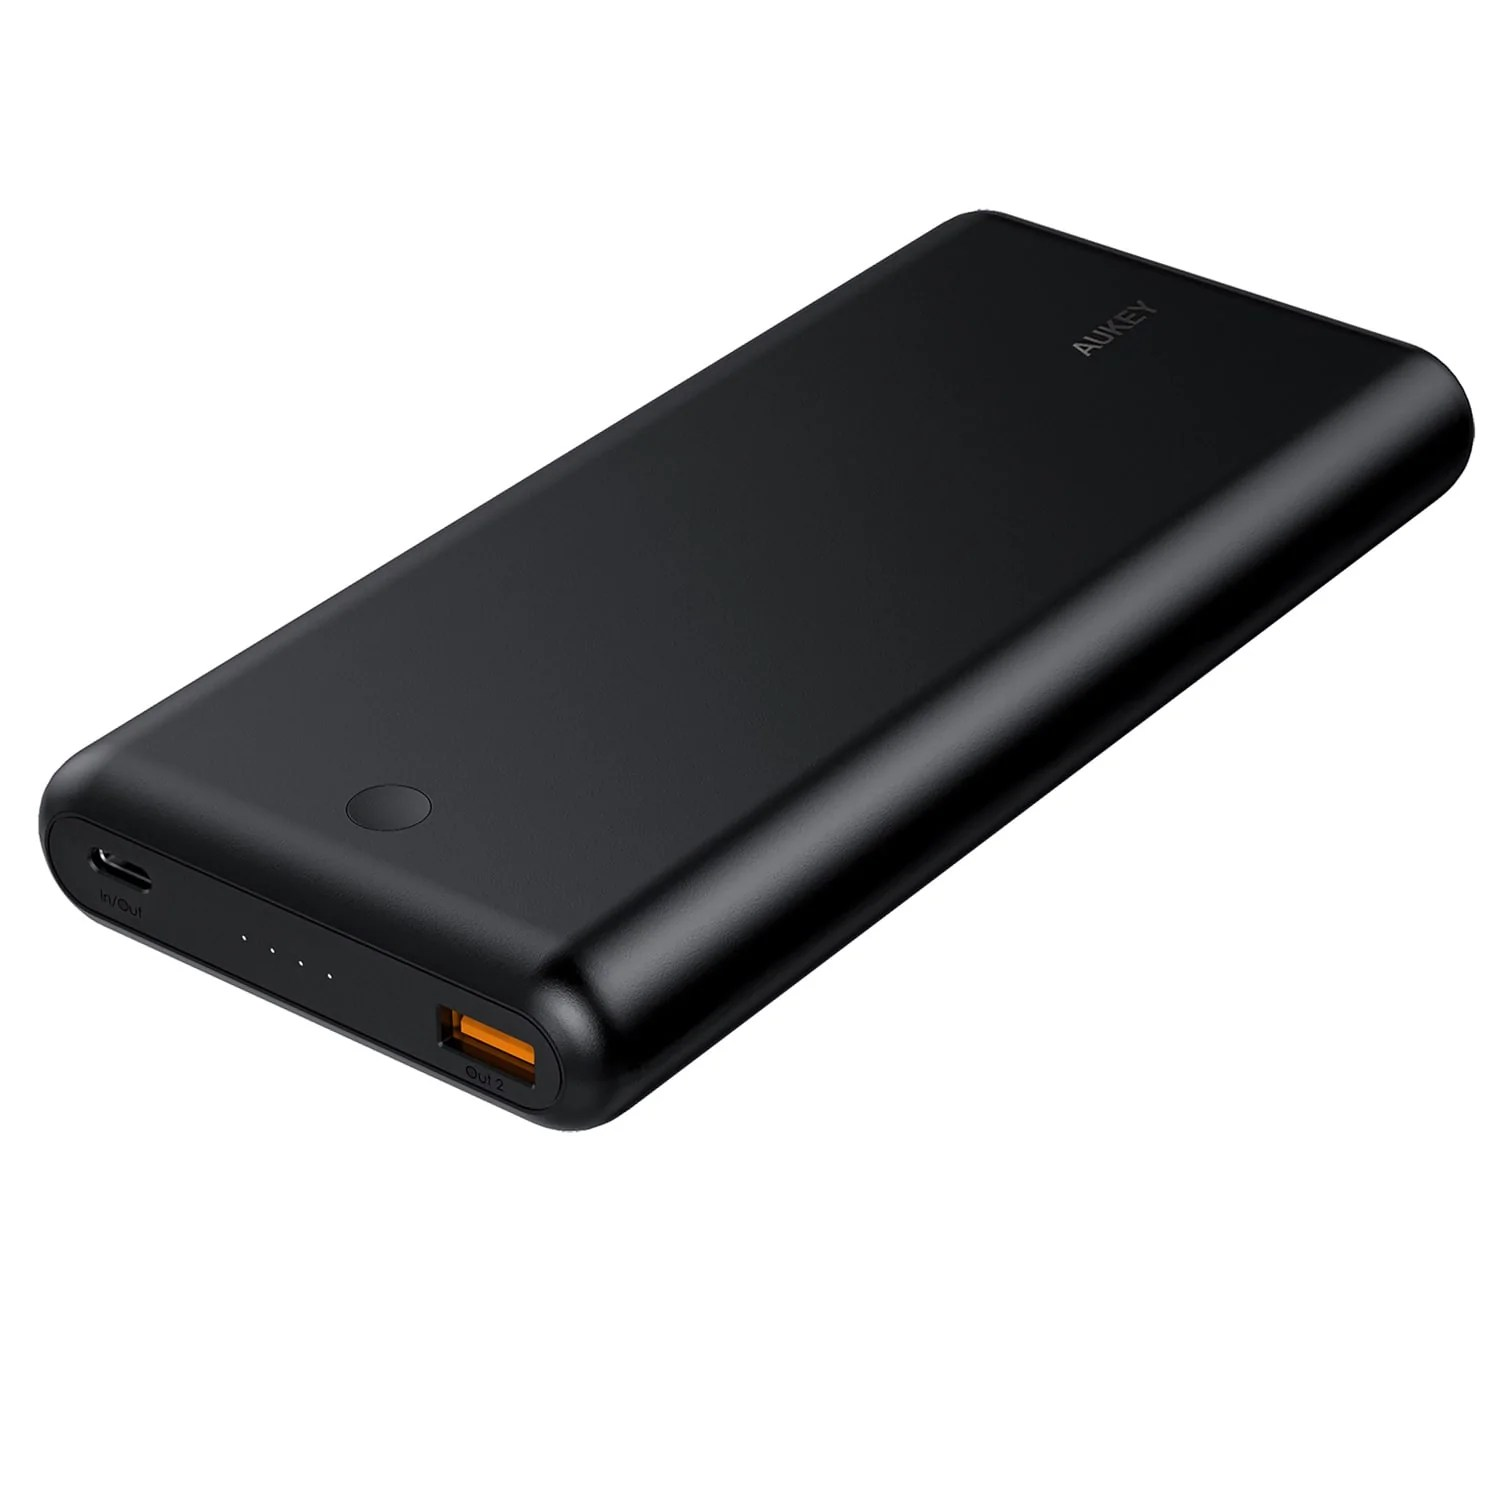 Powerbank Preis Pb Xd26 63w 26800mah Power Delivery 3 Usb C Power Bank With Quick Charge 3